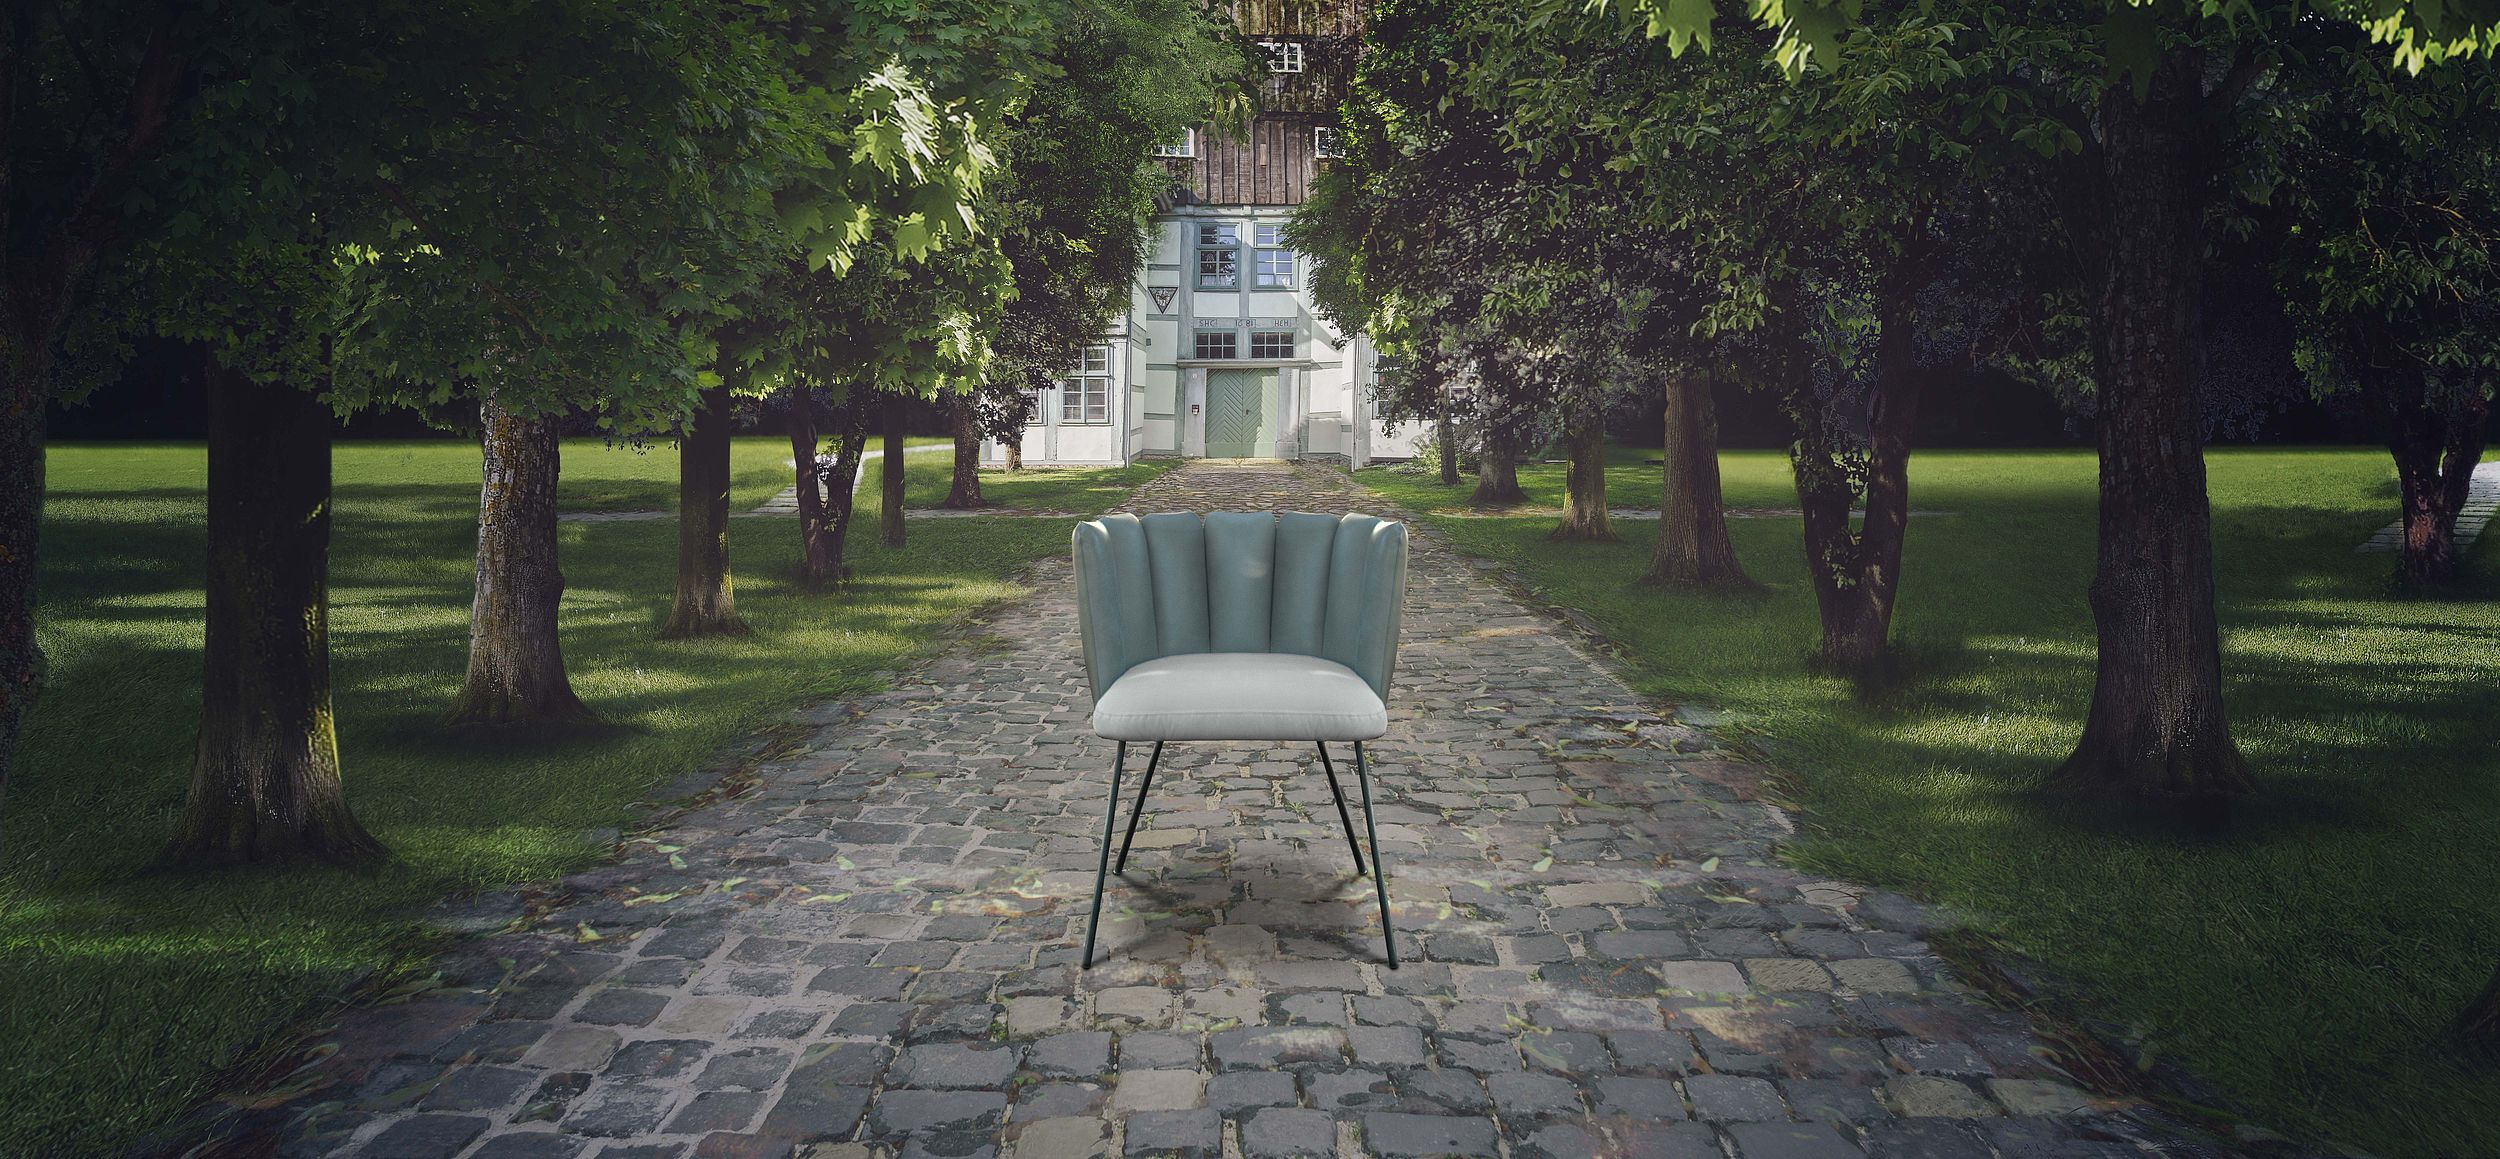 Gaia armchair by Monica Armani for KFF